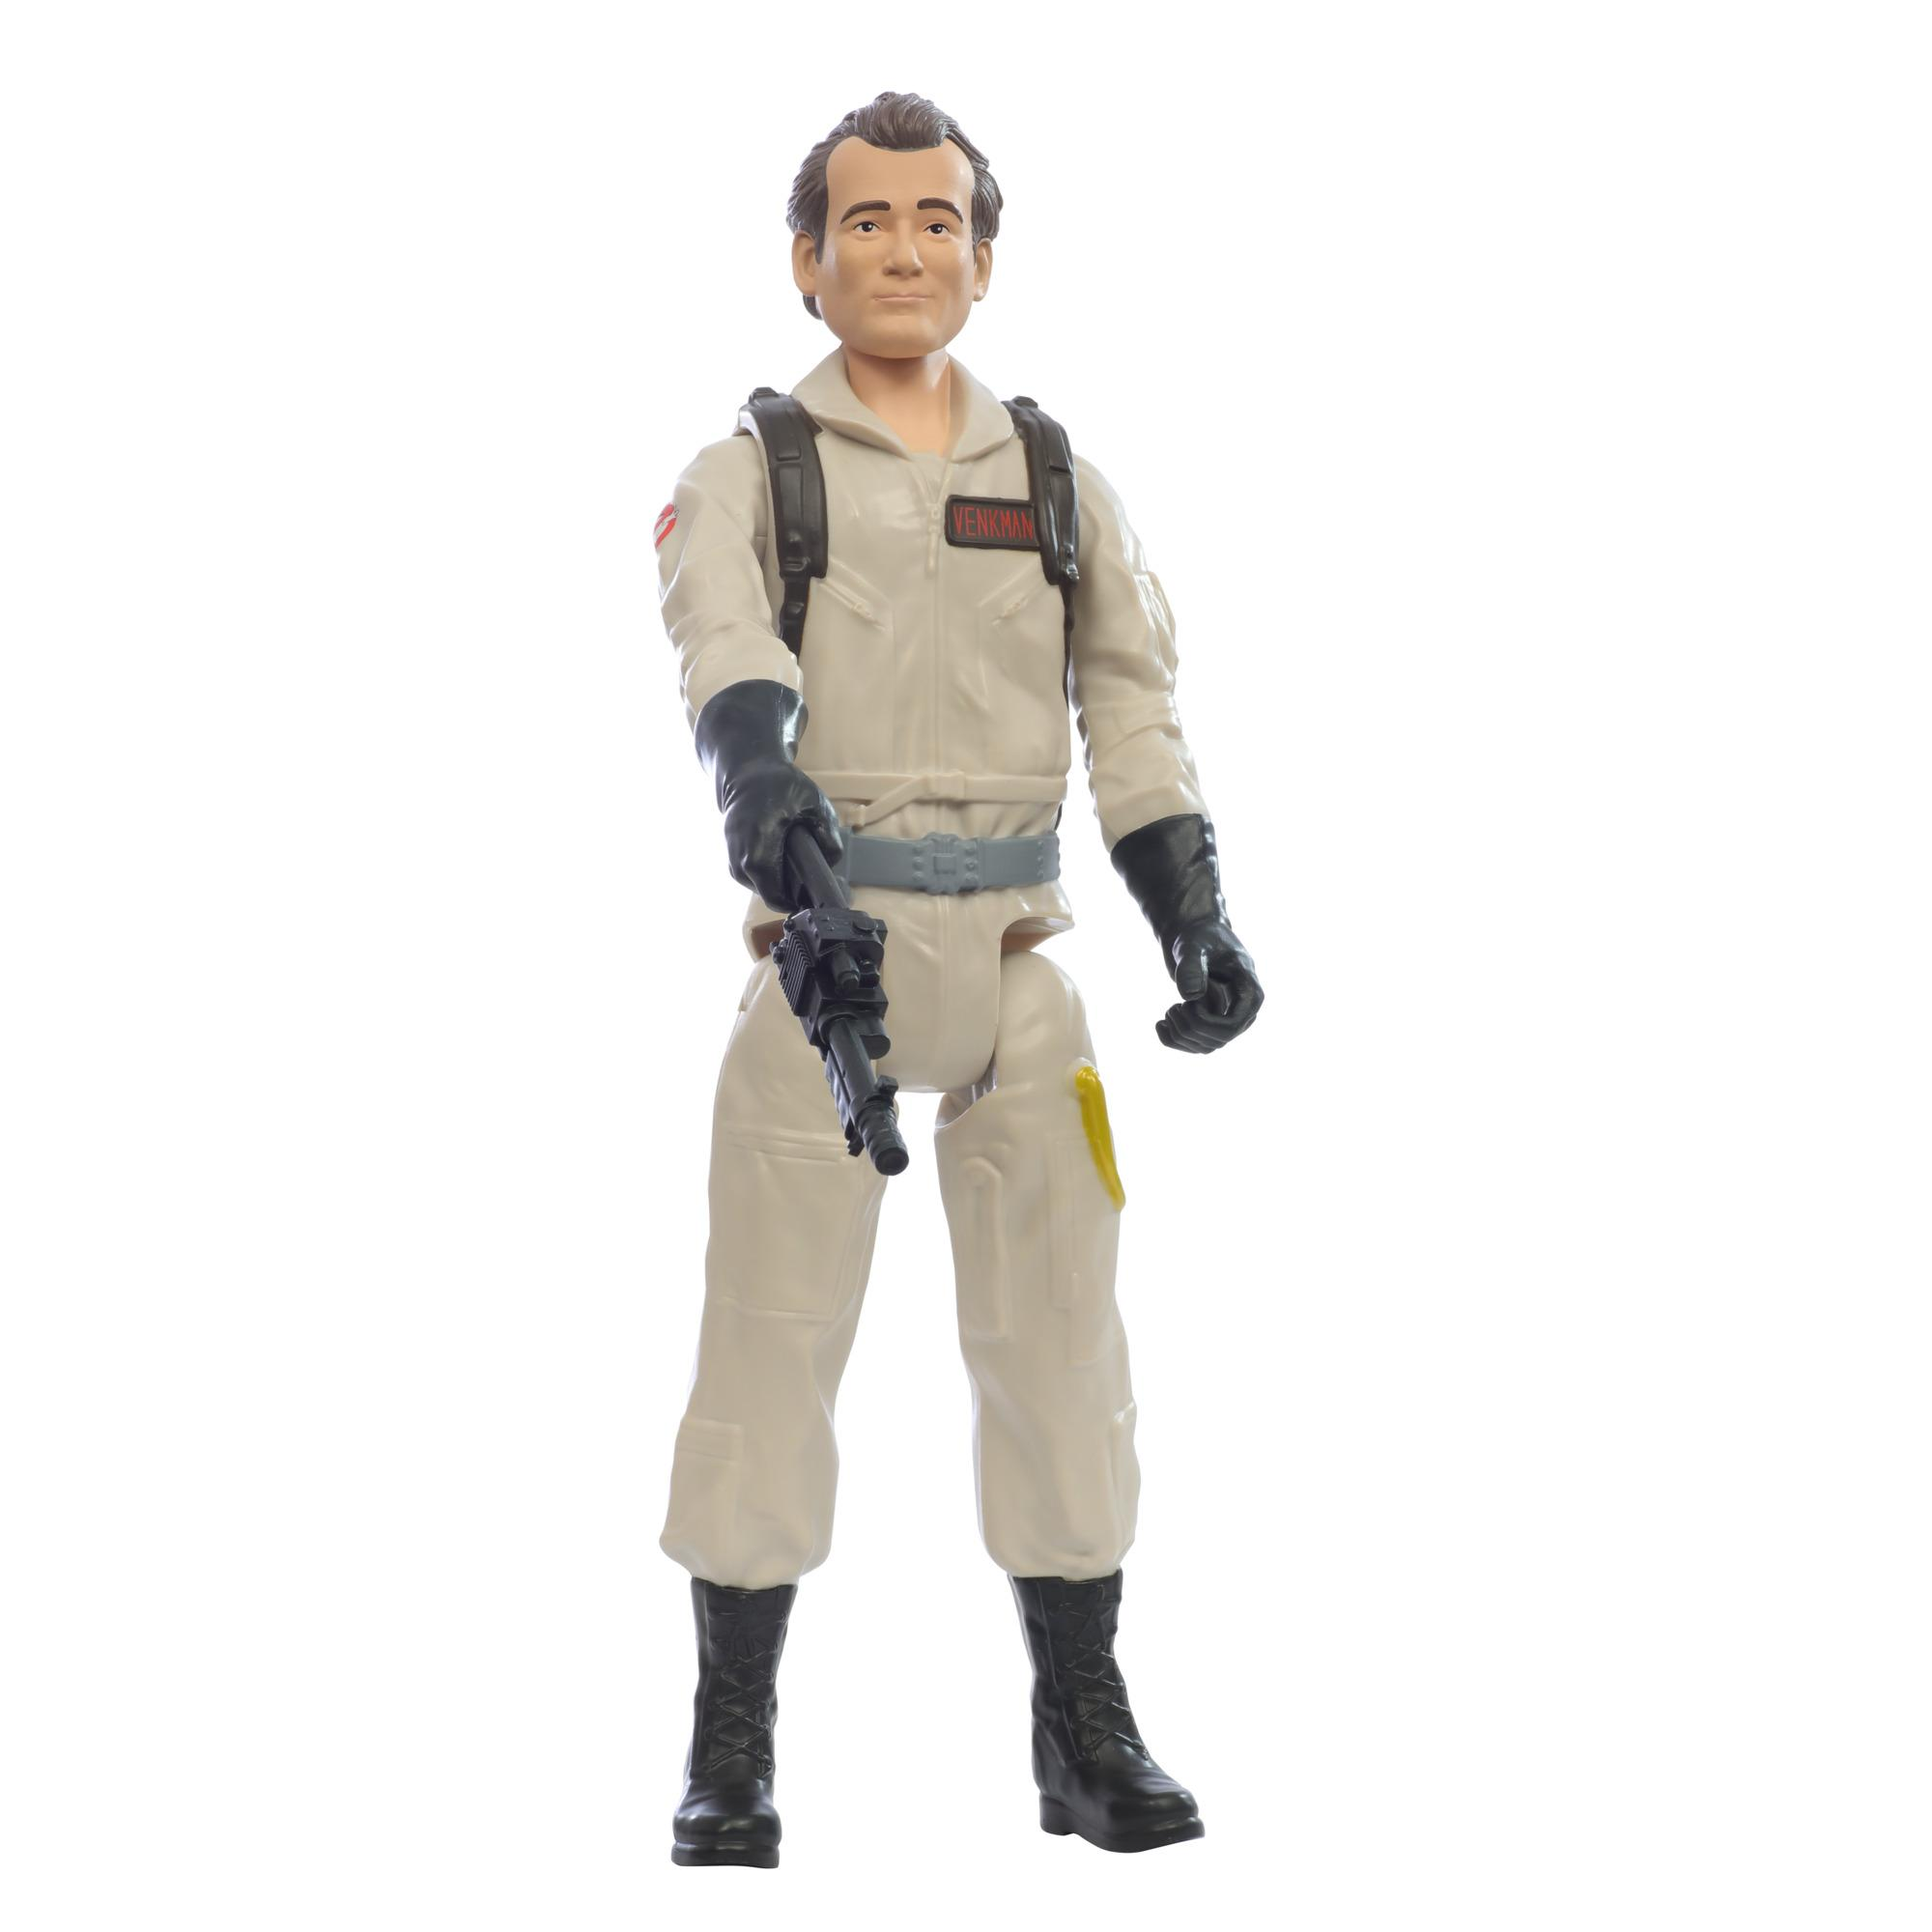 Ghostbusters Peter Venkman Toy 12-Inch-Scale Collectible Classic 1984 Ghostbusters Figure, Toys for Kids Ages 4 and Up